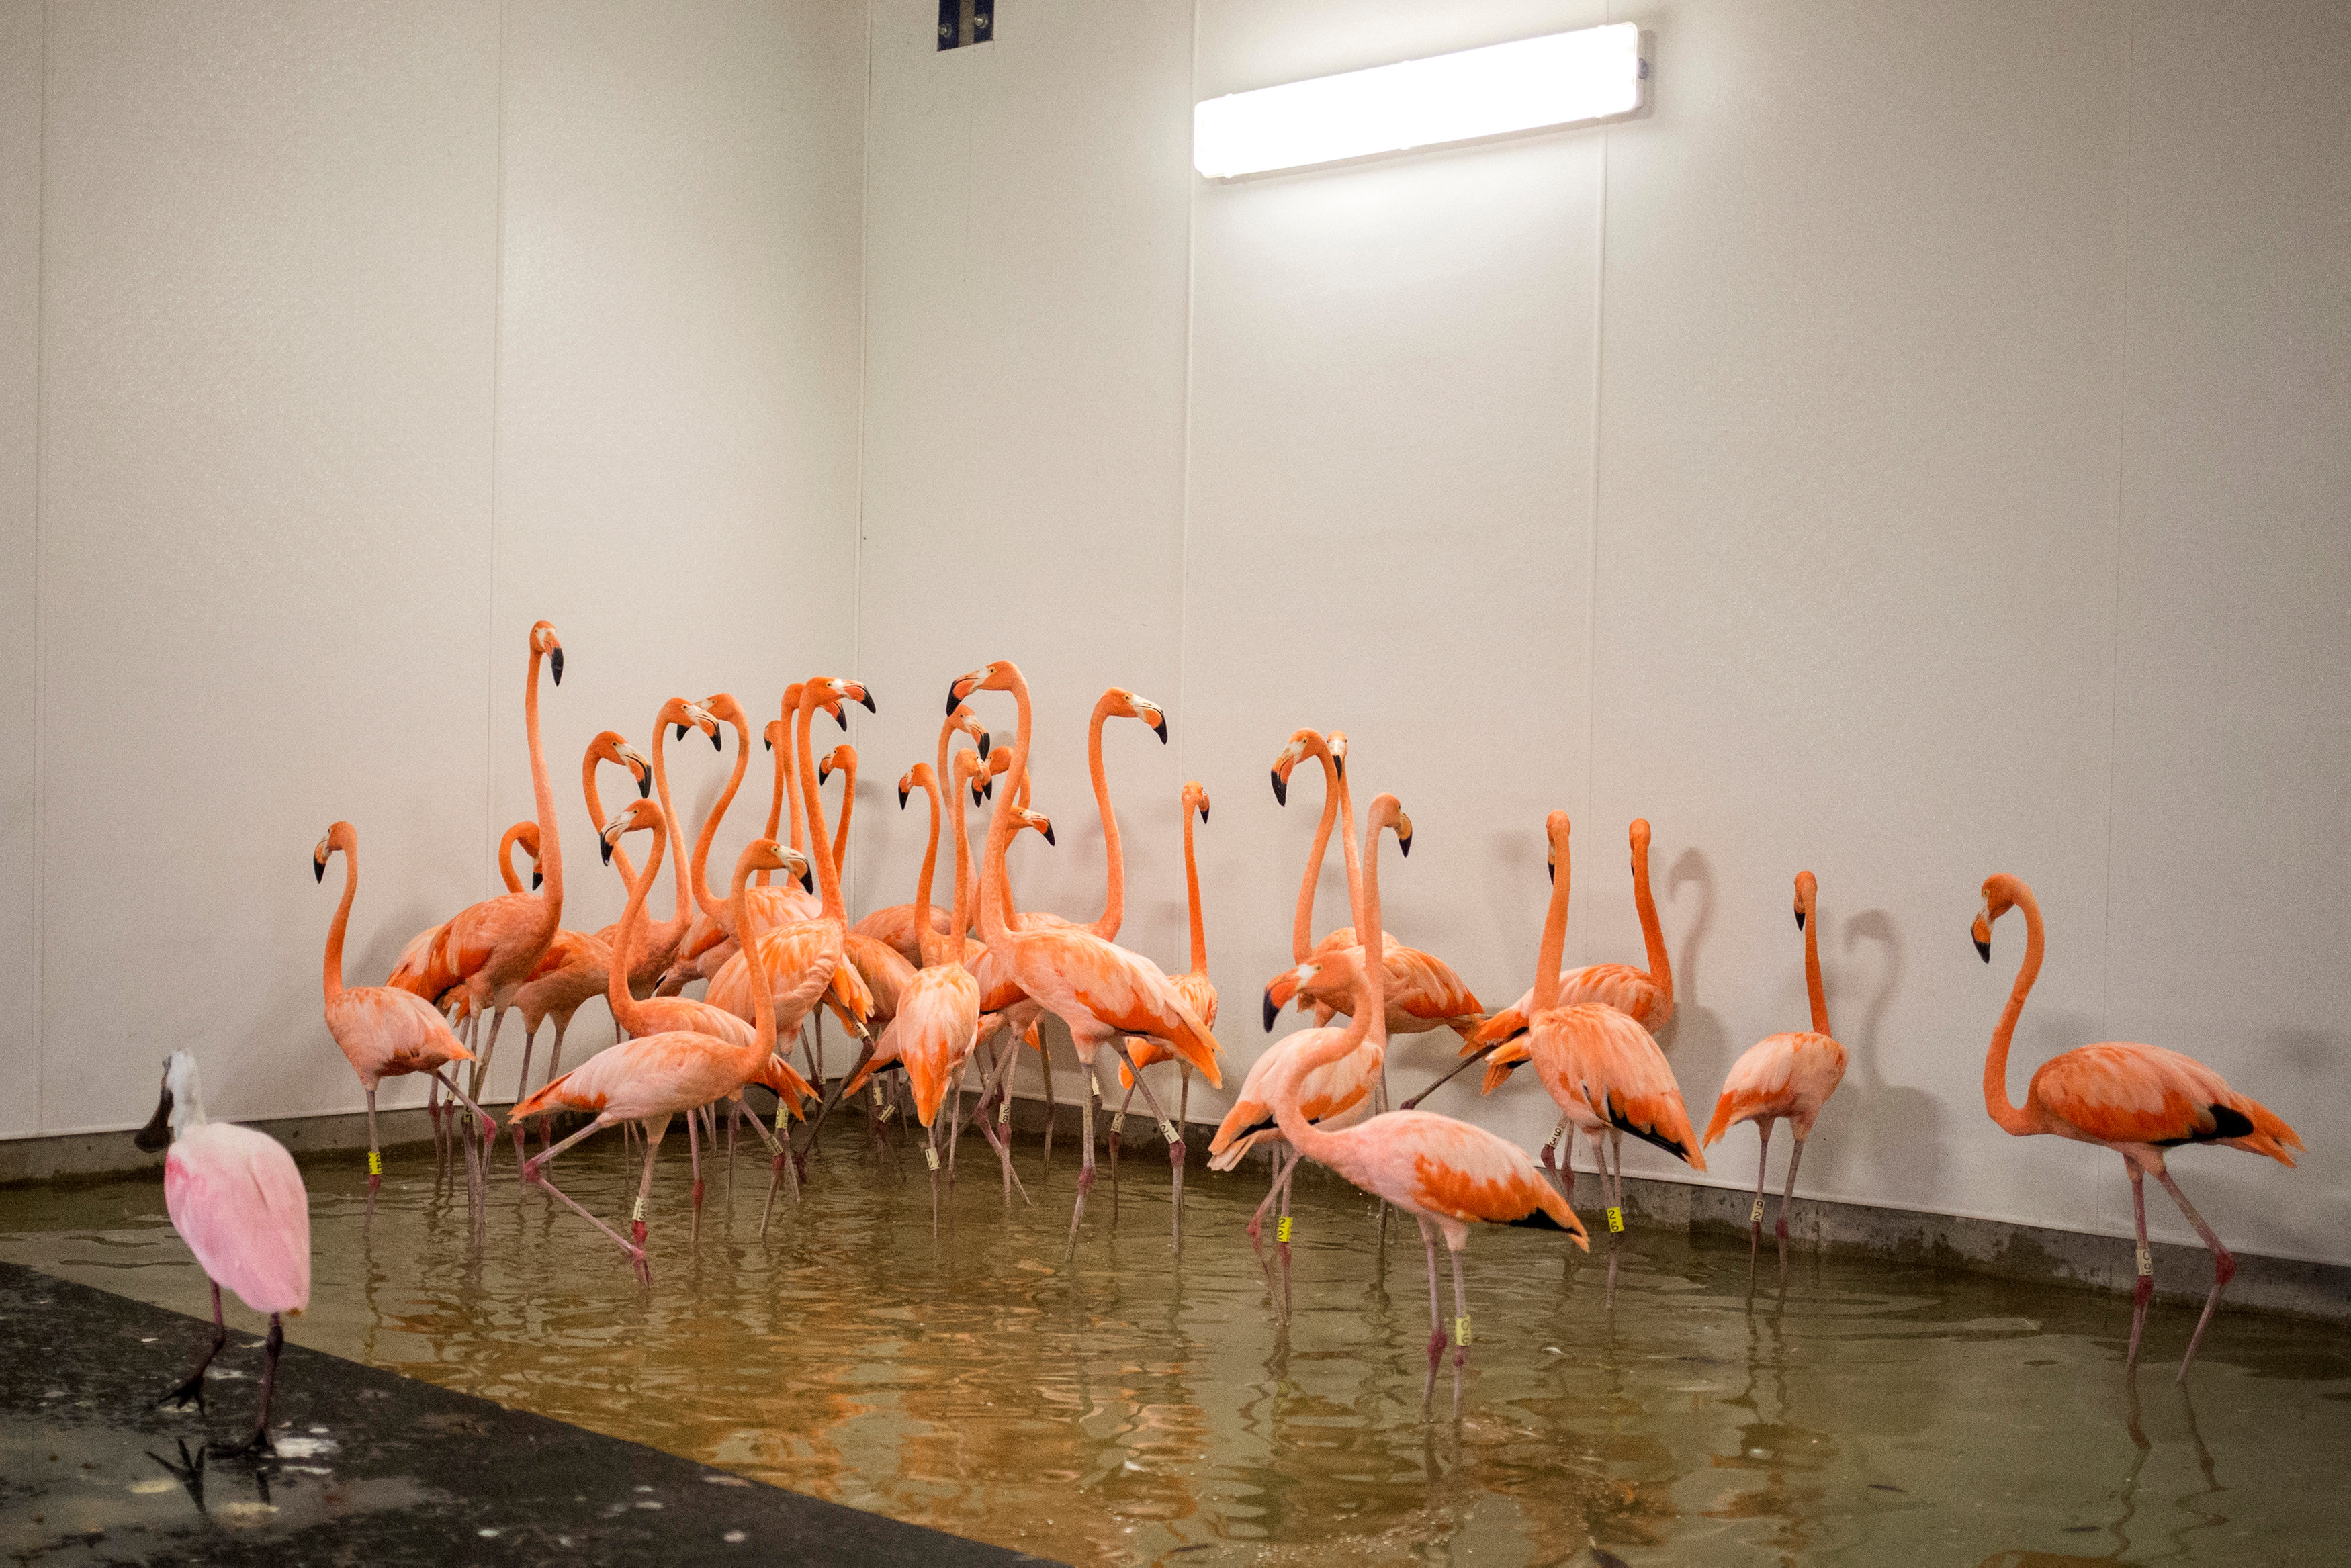 Flamingos take refuge in a shelter ahead of the downfall of Hurricane Irma at the zoo in Miami, Florida, U.S. September 9, 2017.  REUTERS/Adrees Latif